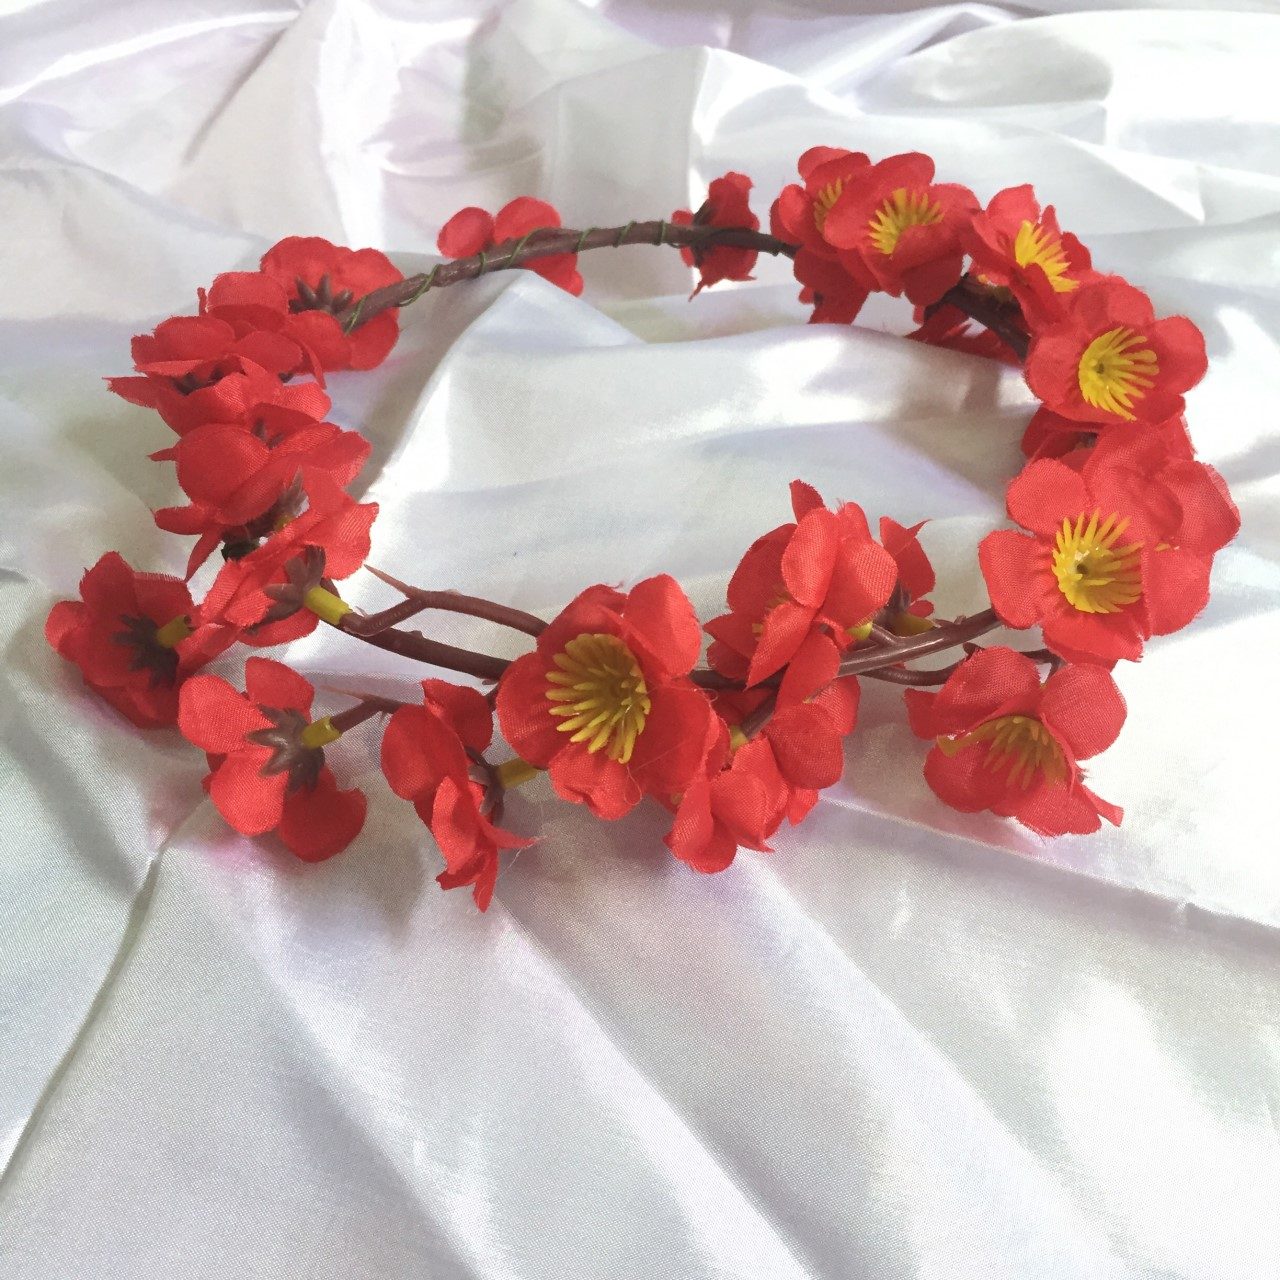 Fourpm store shop line sakura red flower crown izmirmasajfo Image collections